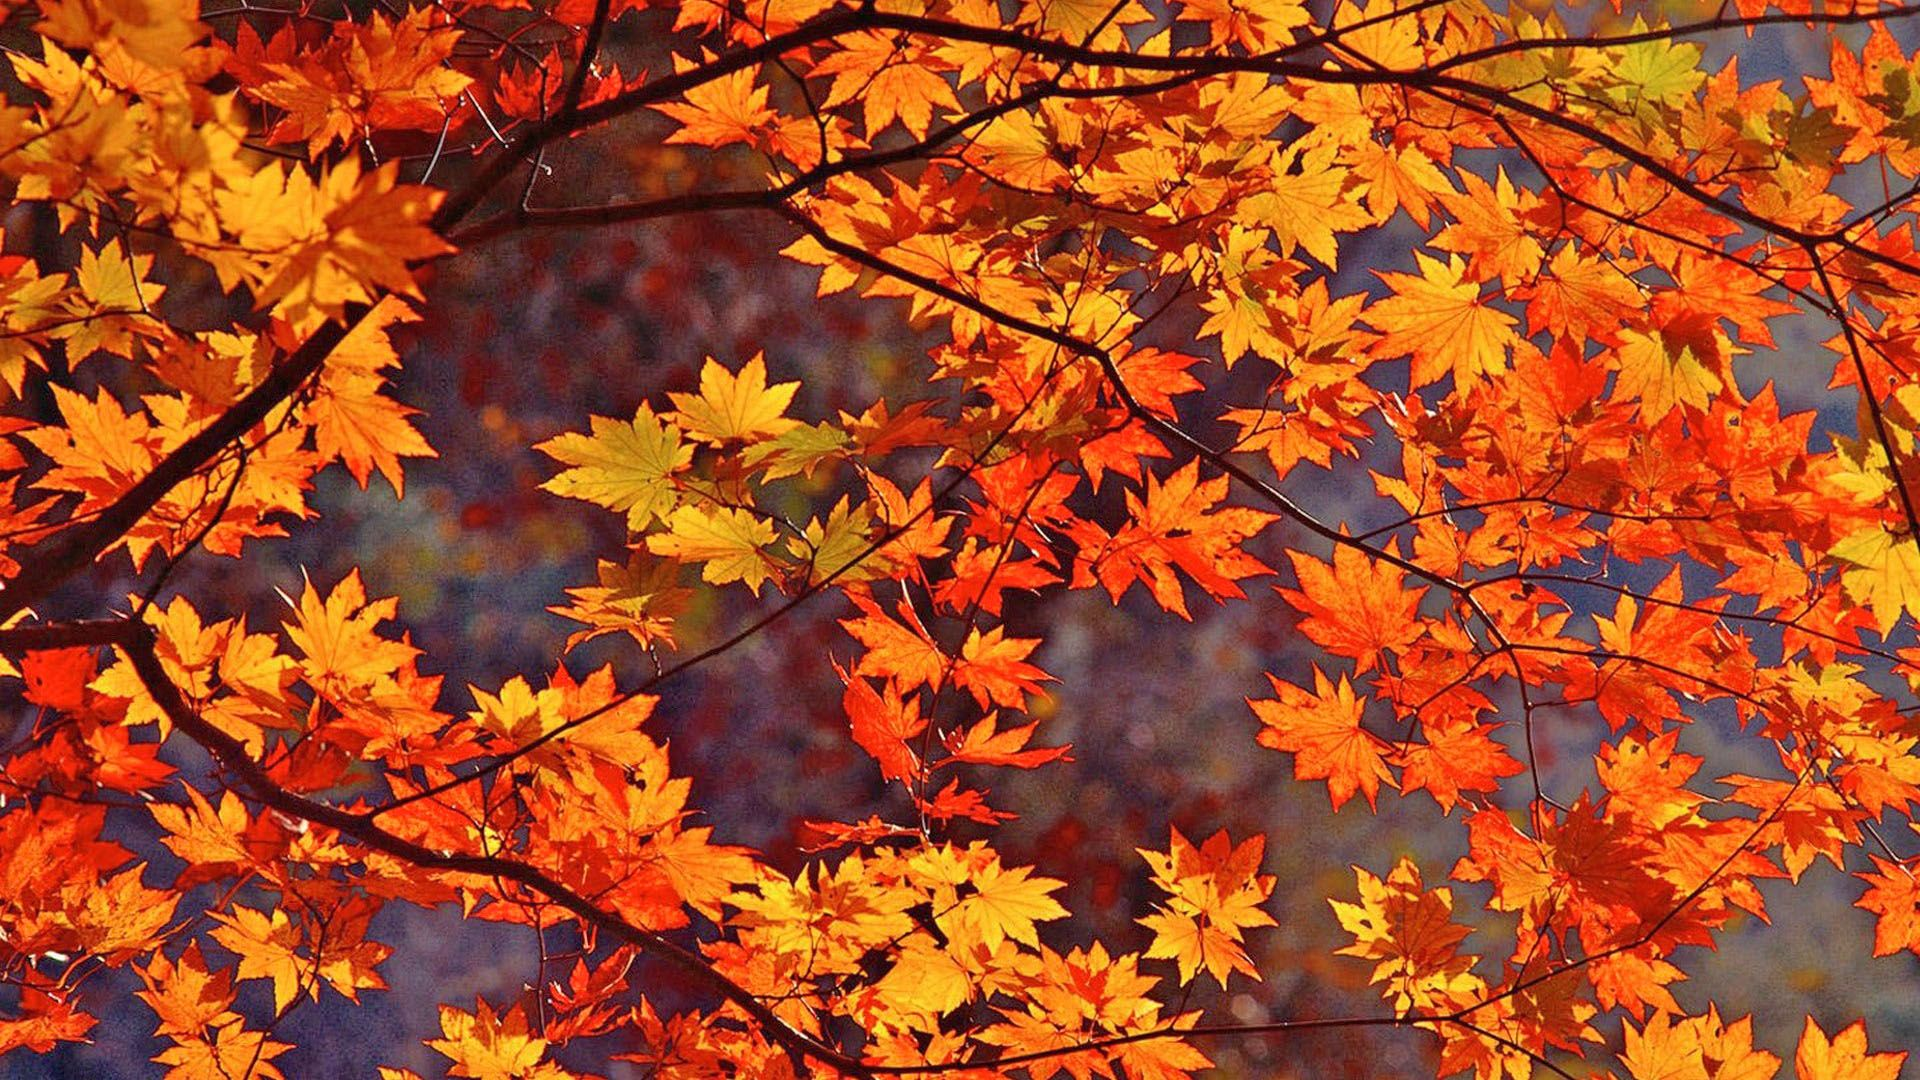 22 Reasons To Love Fall Autumn Leaves Wallpaper Free Fall Wallpaper Desktop Wallpaper Fall